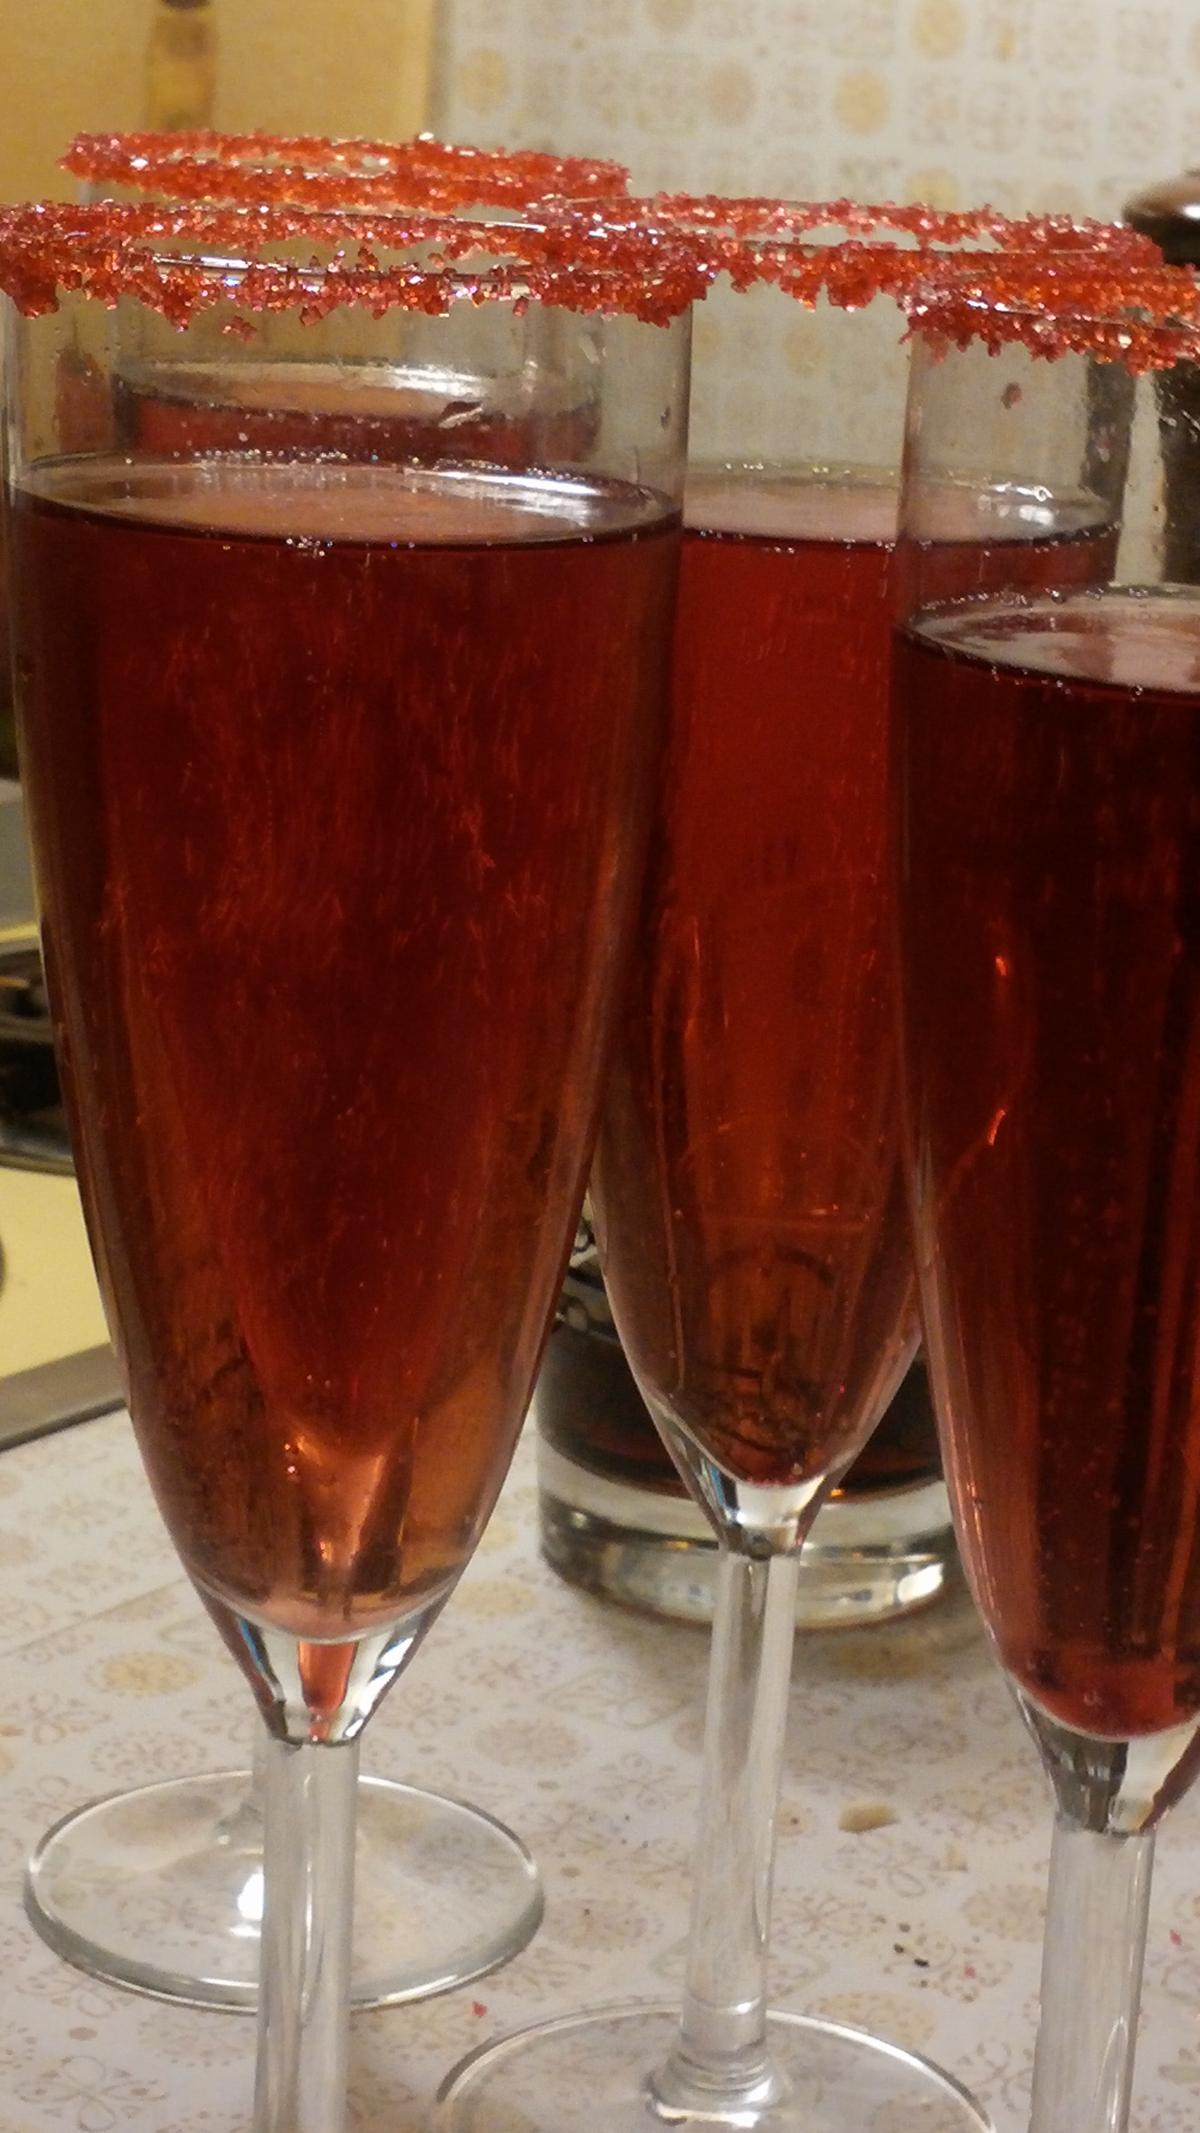 [Kir royale cocktails in flutes with sugared rims; copyright 2015, Marsha Wirtel, all rights reserved]